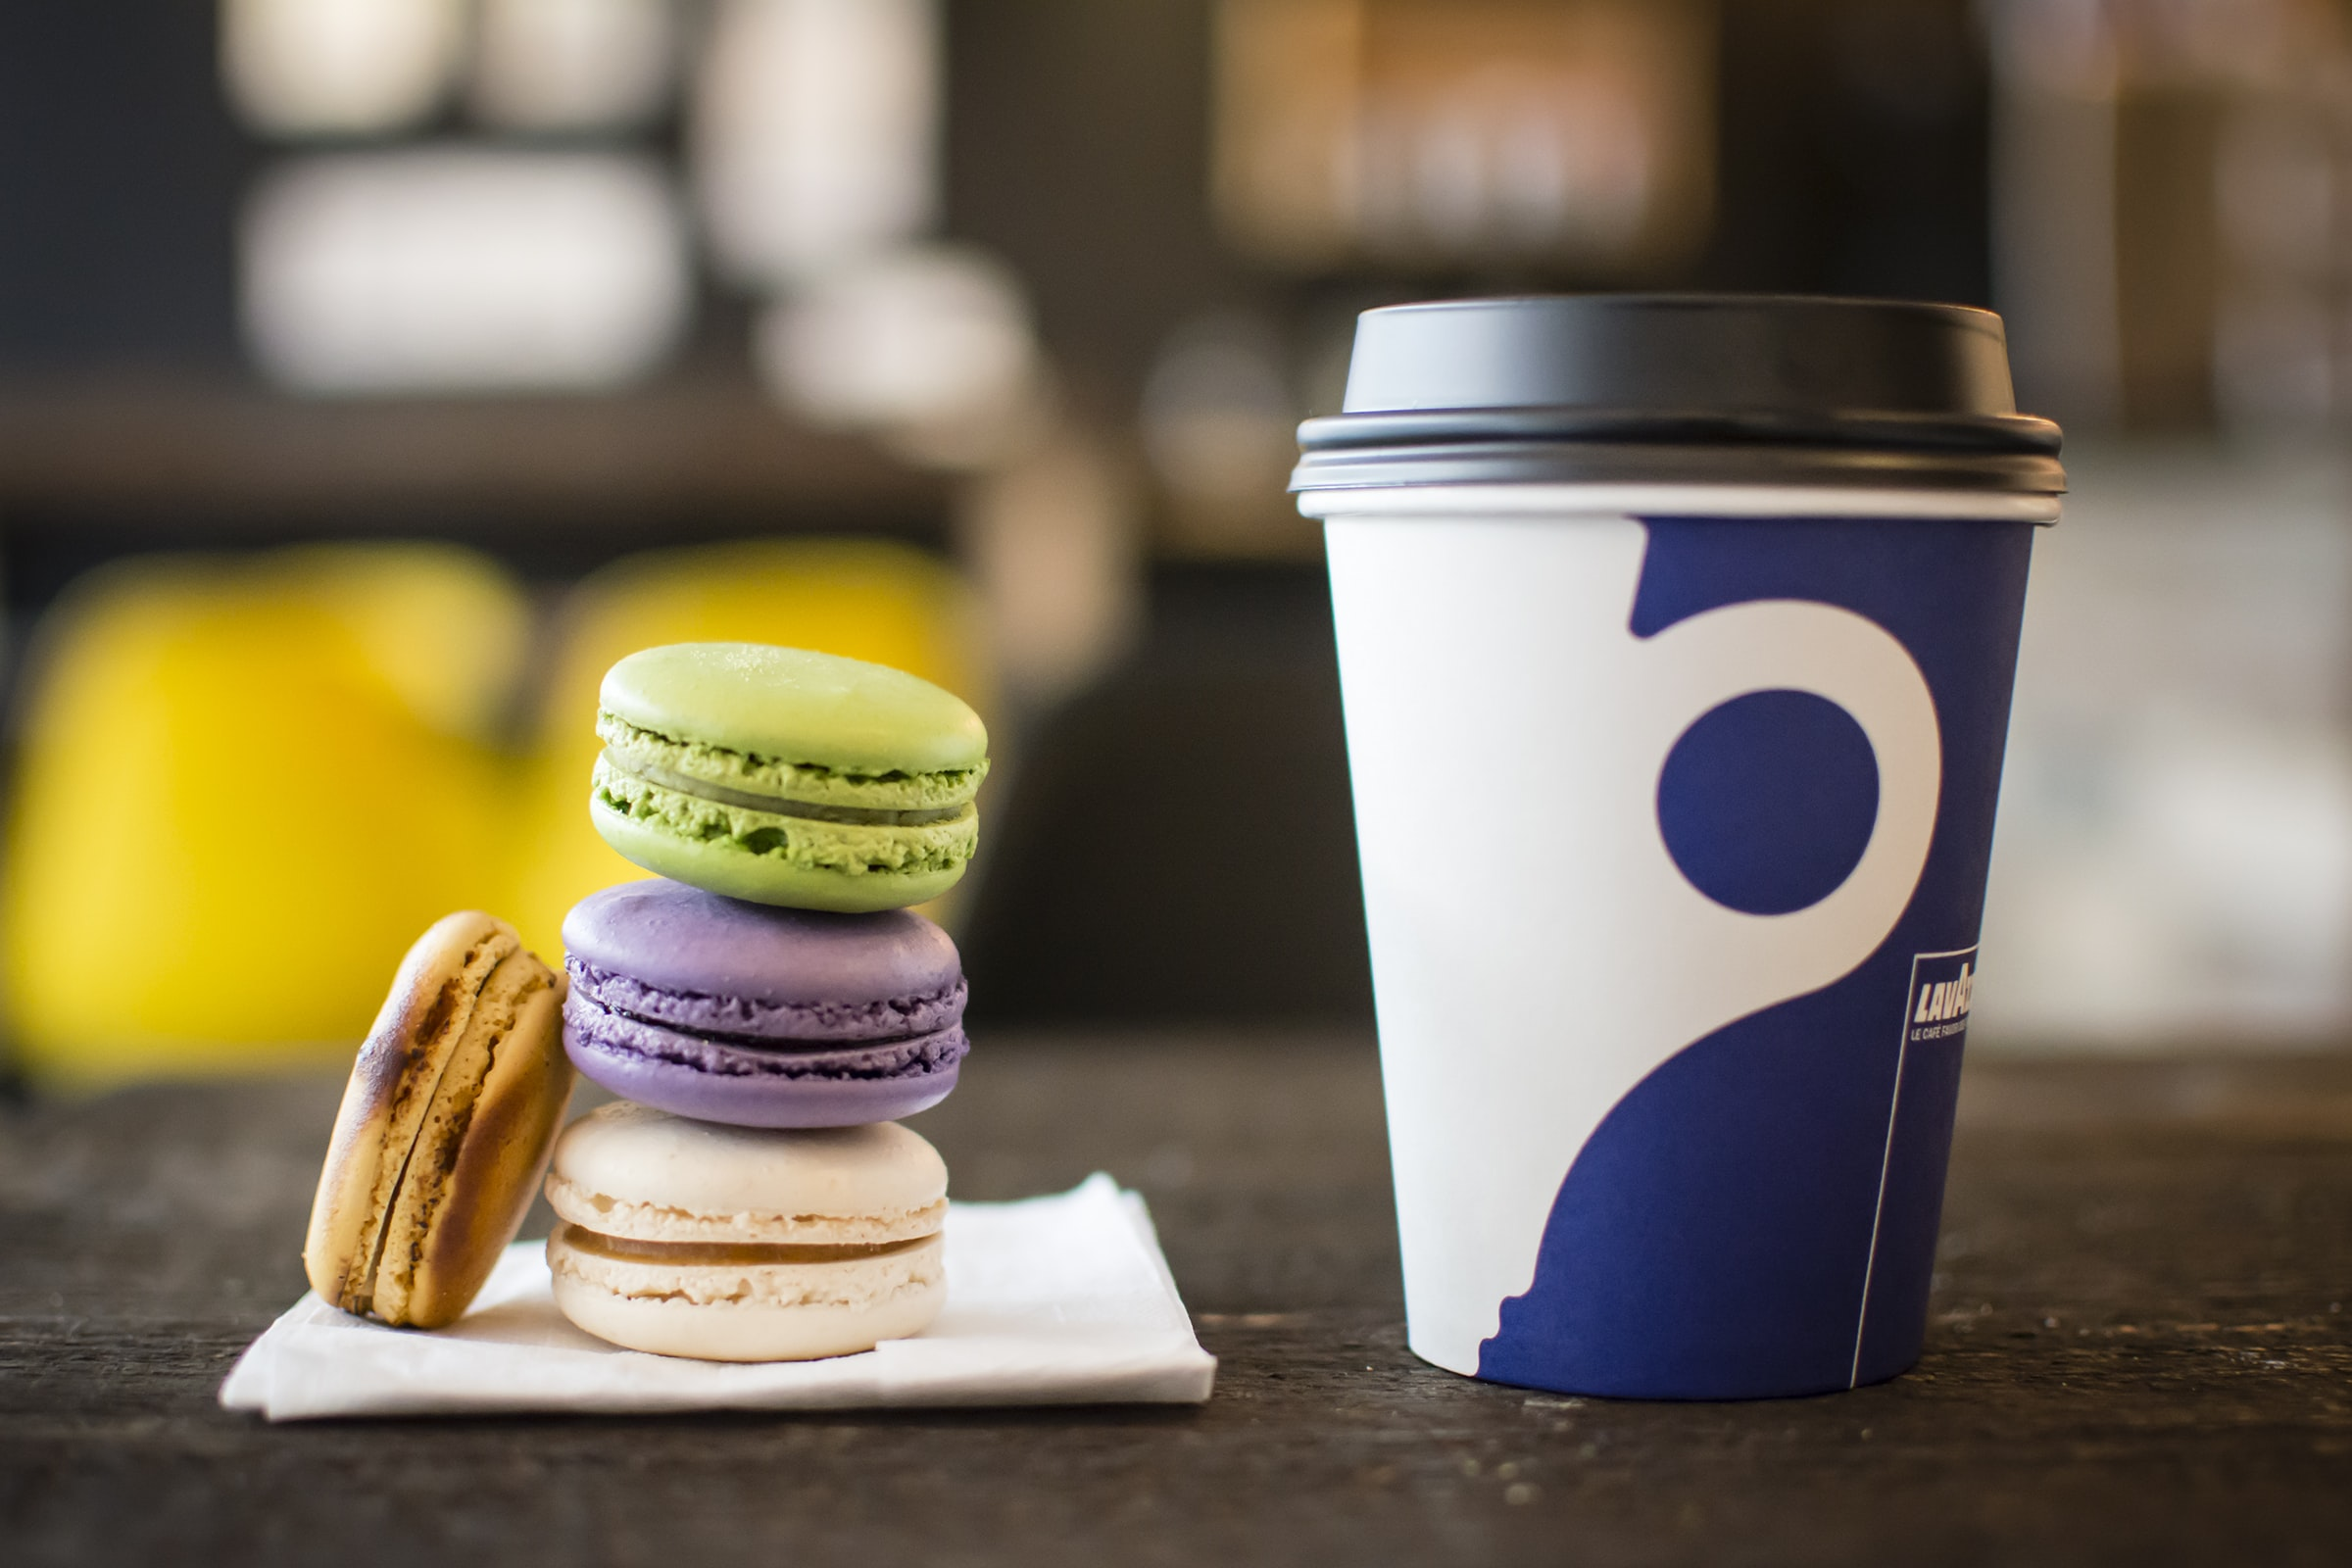 macaroons on tissue beside coffee cup